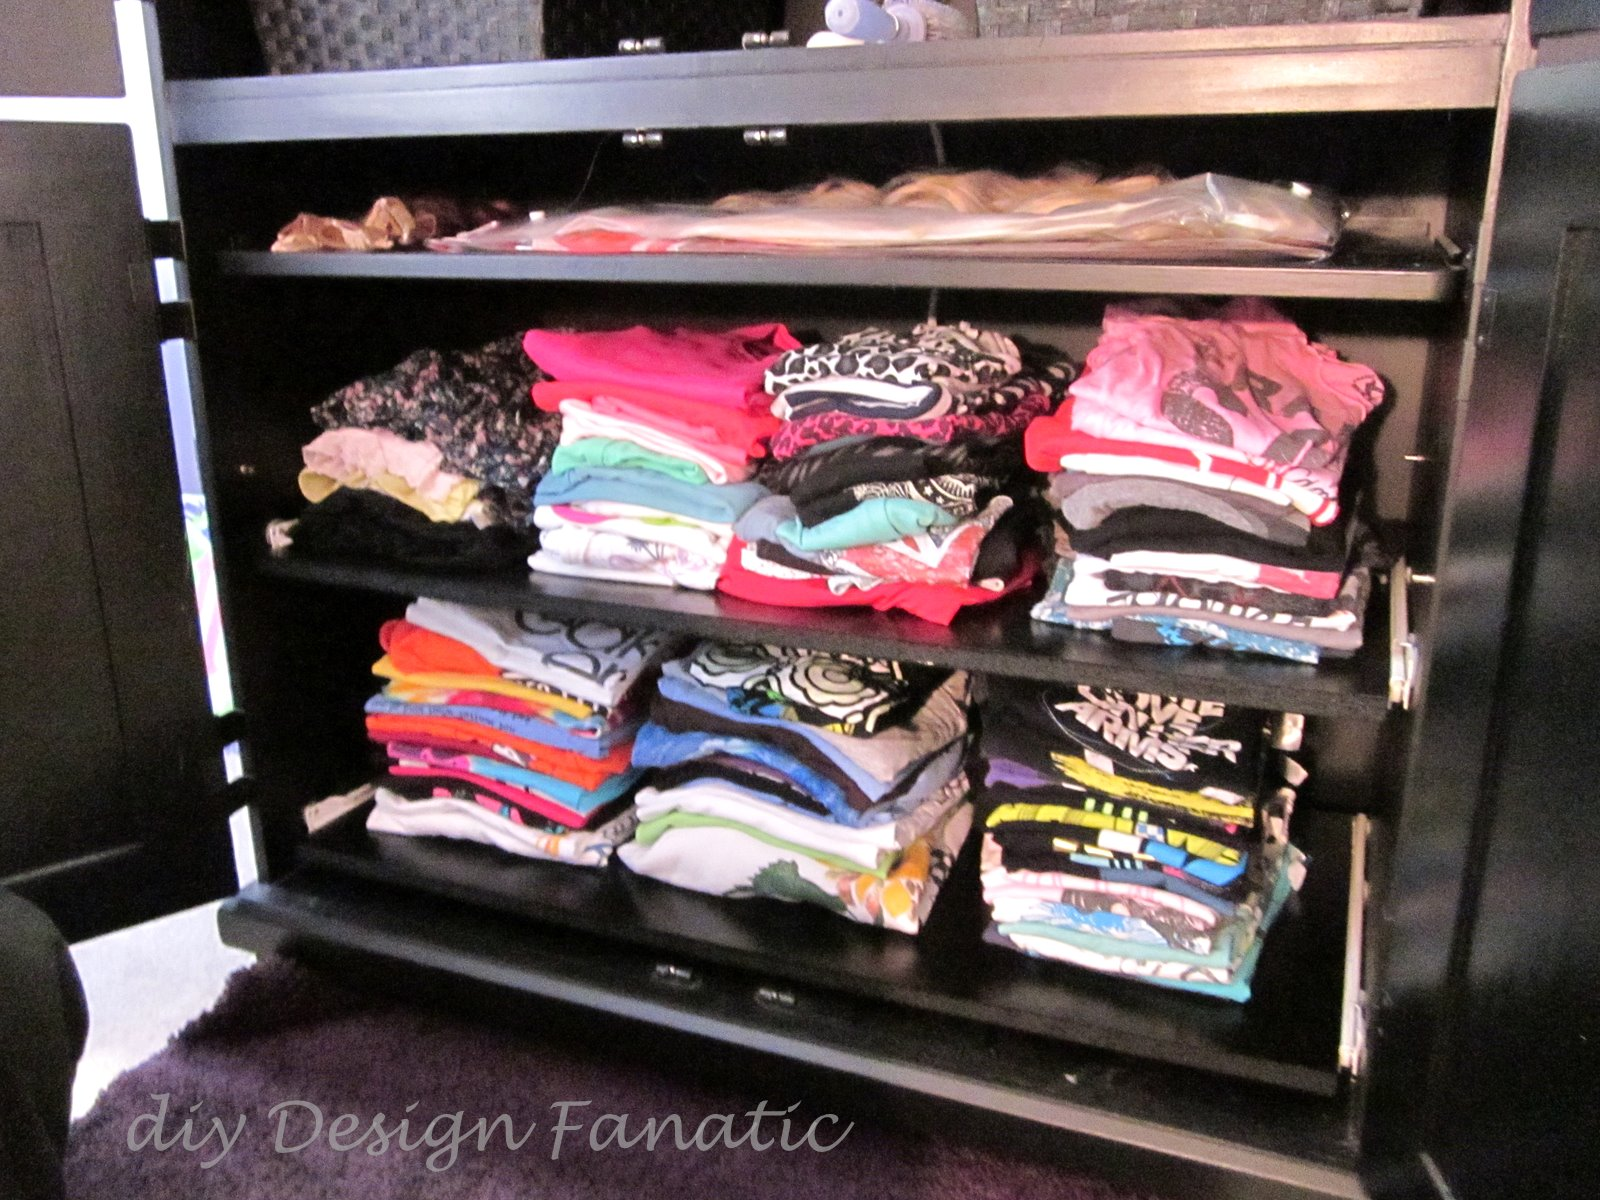 diy Design Fanatic Organized Armoire